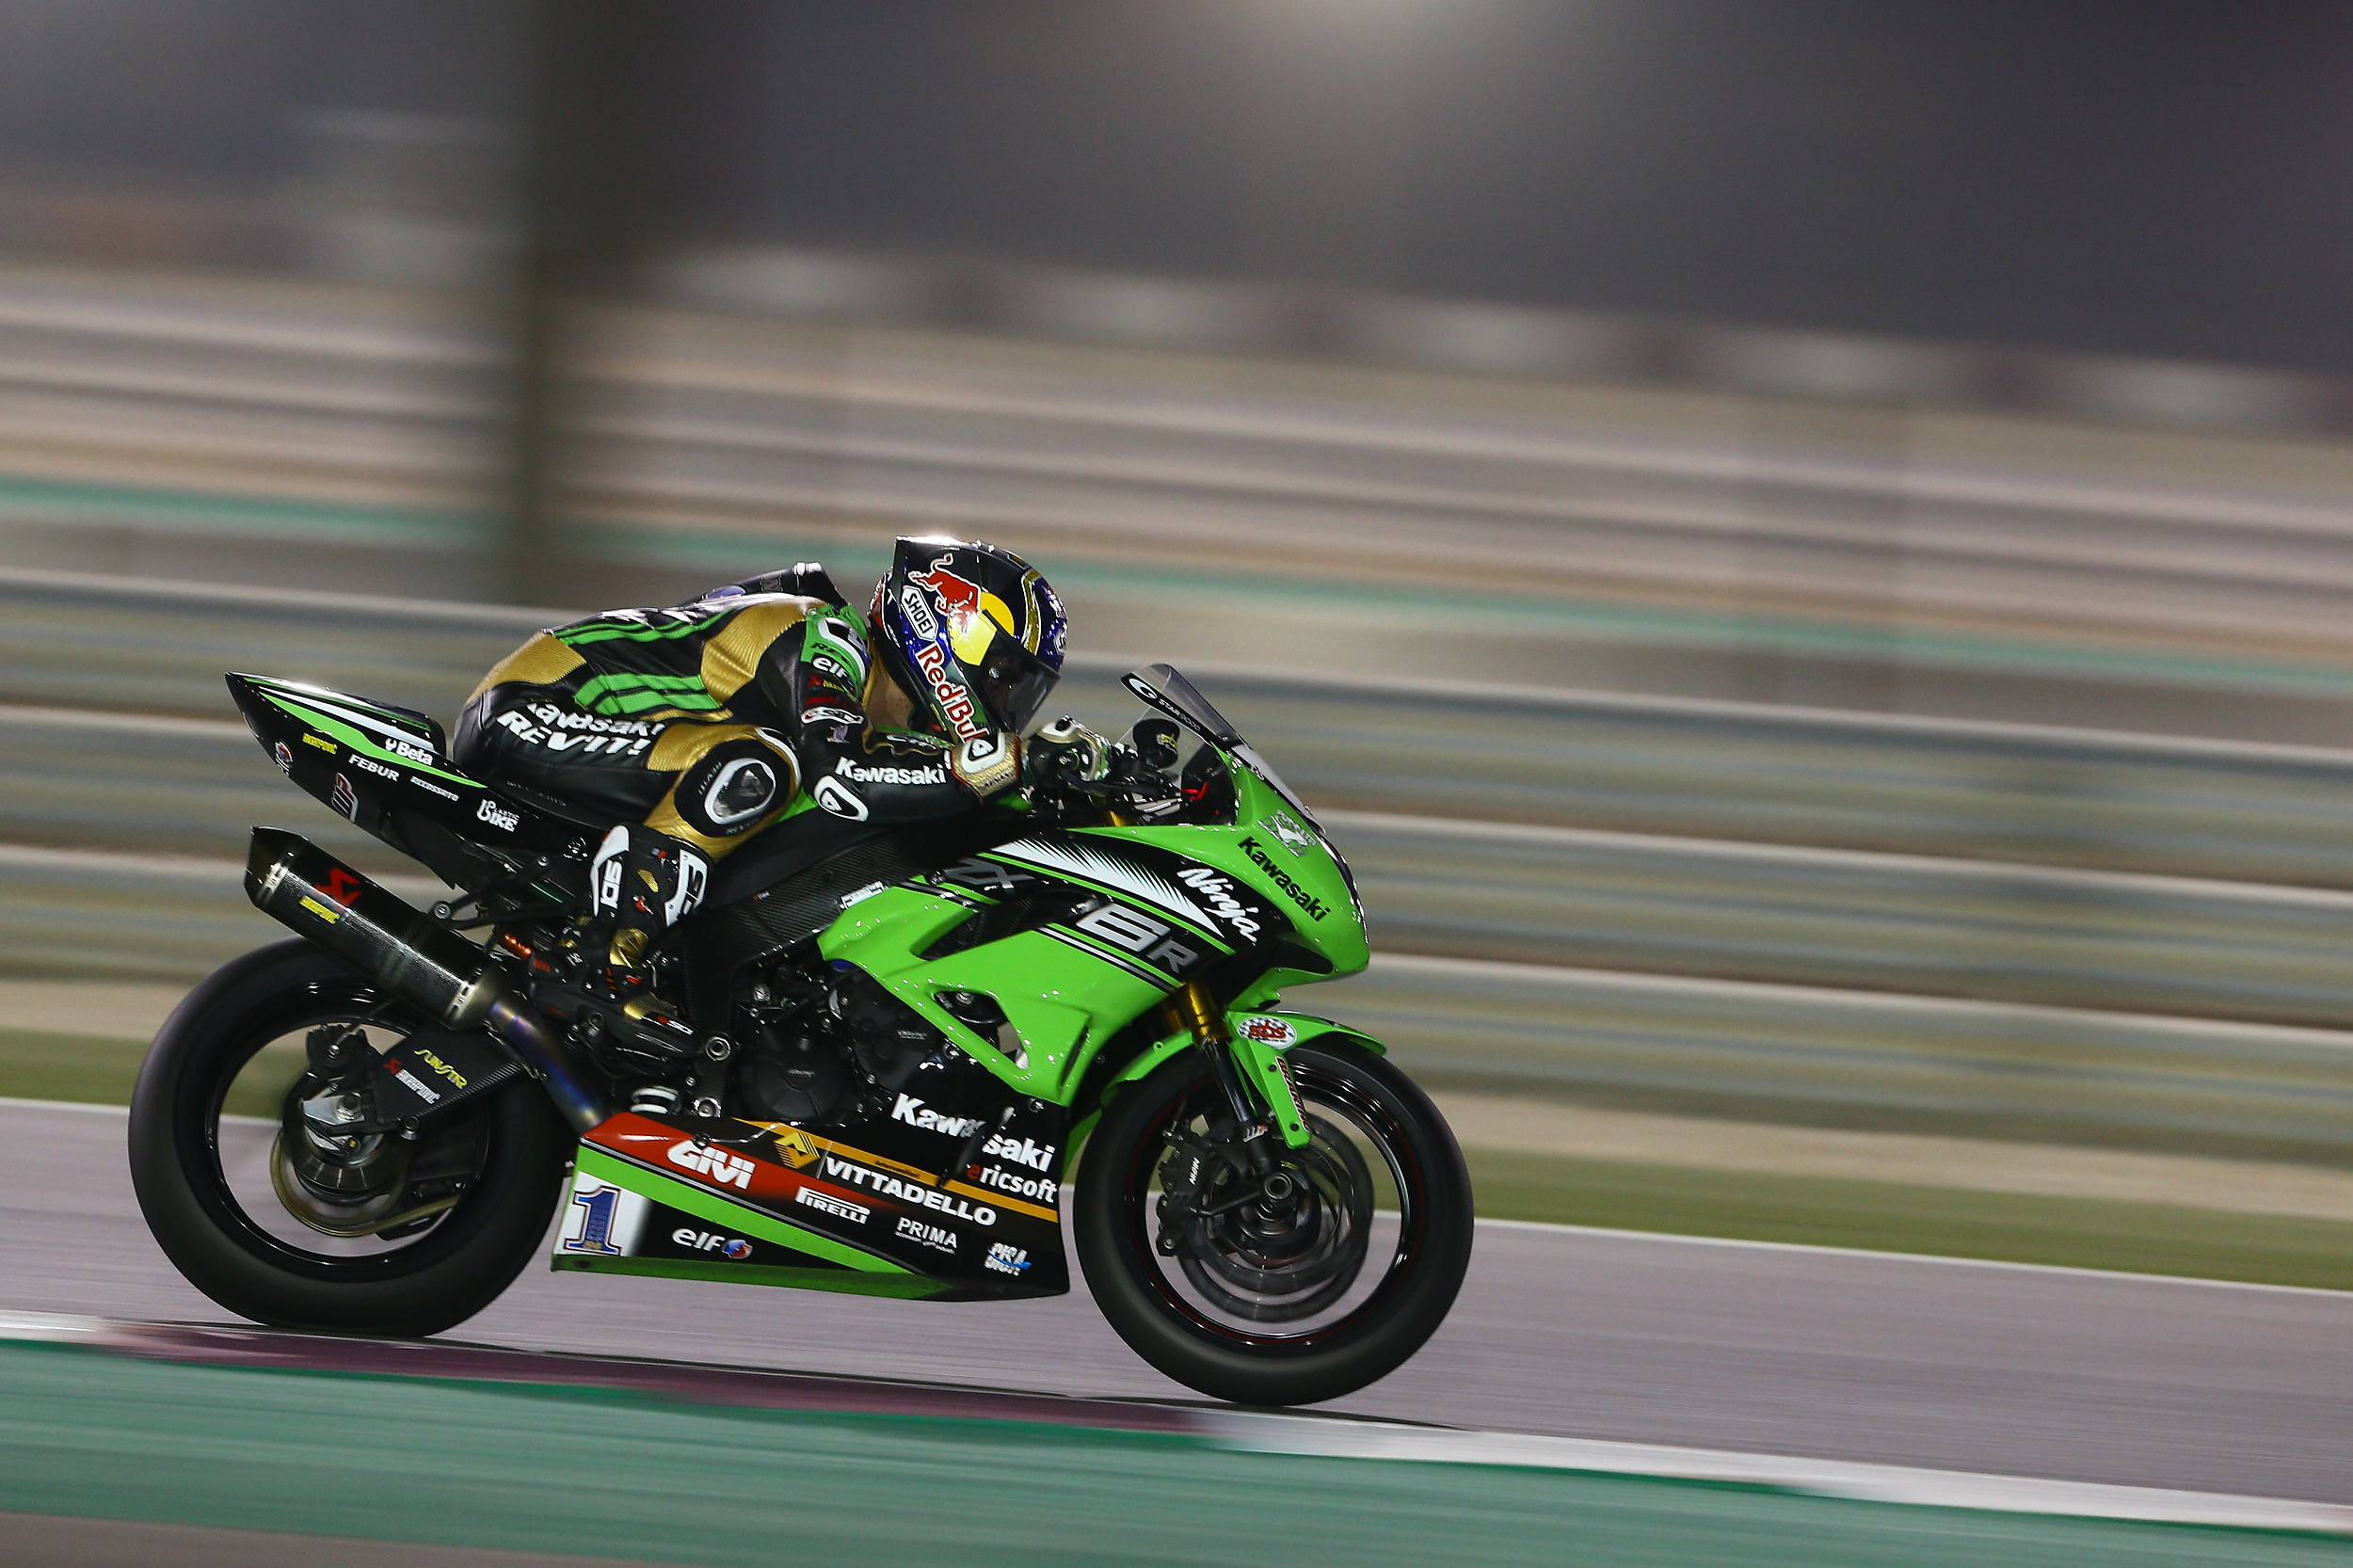 Sofuoglu quarto in Superpole. Decimo Canducci, dodicesimo West.